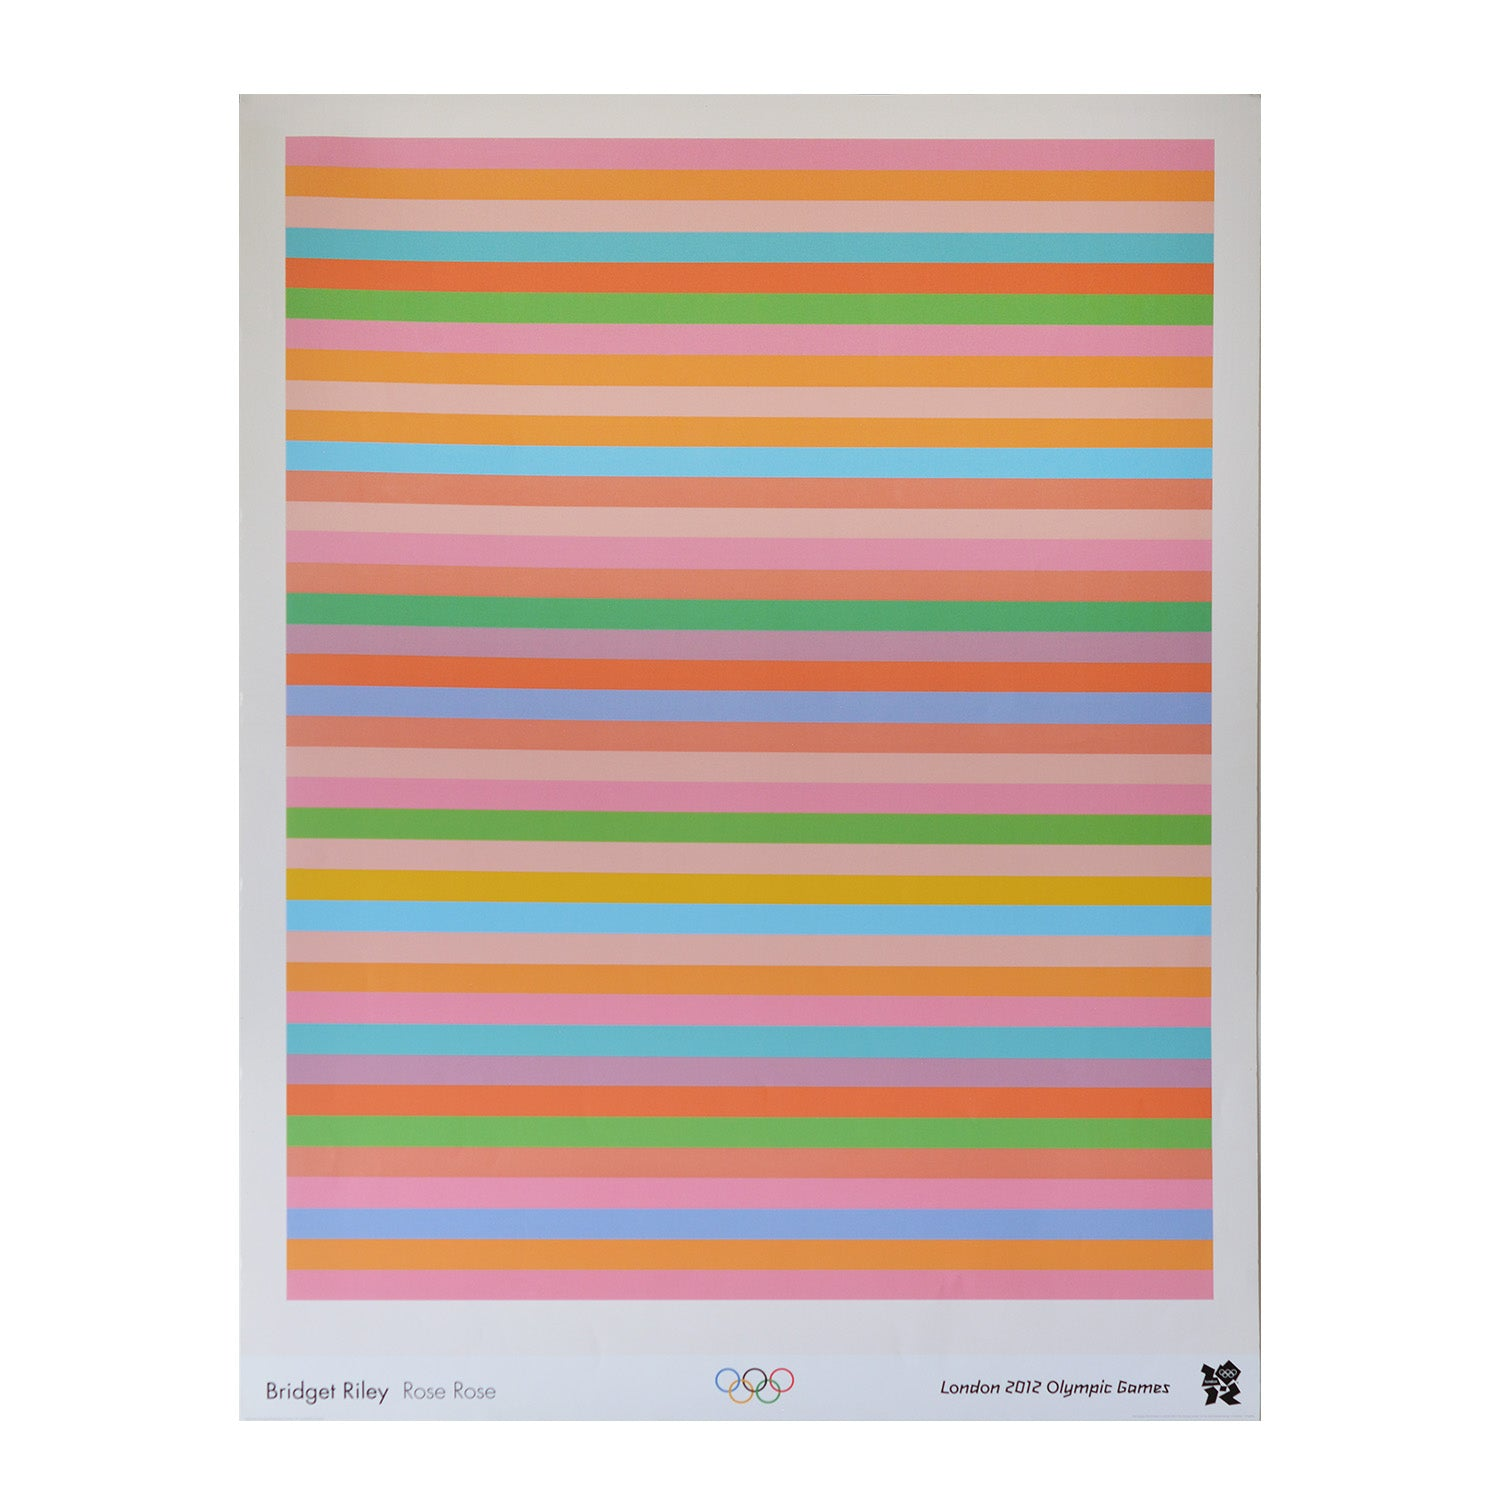 Official 2012 Olympic Games poster Bridget Riley